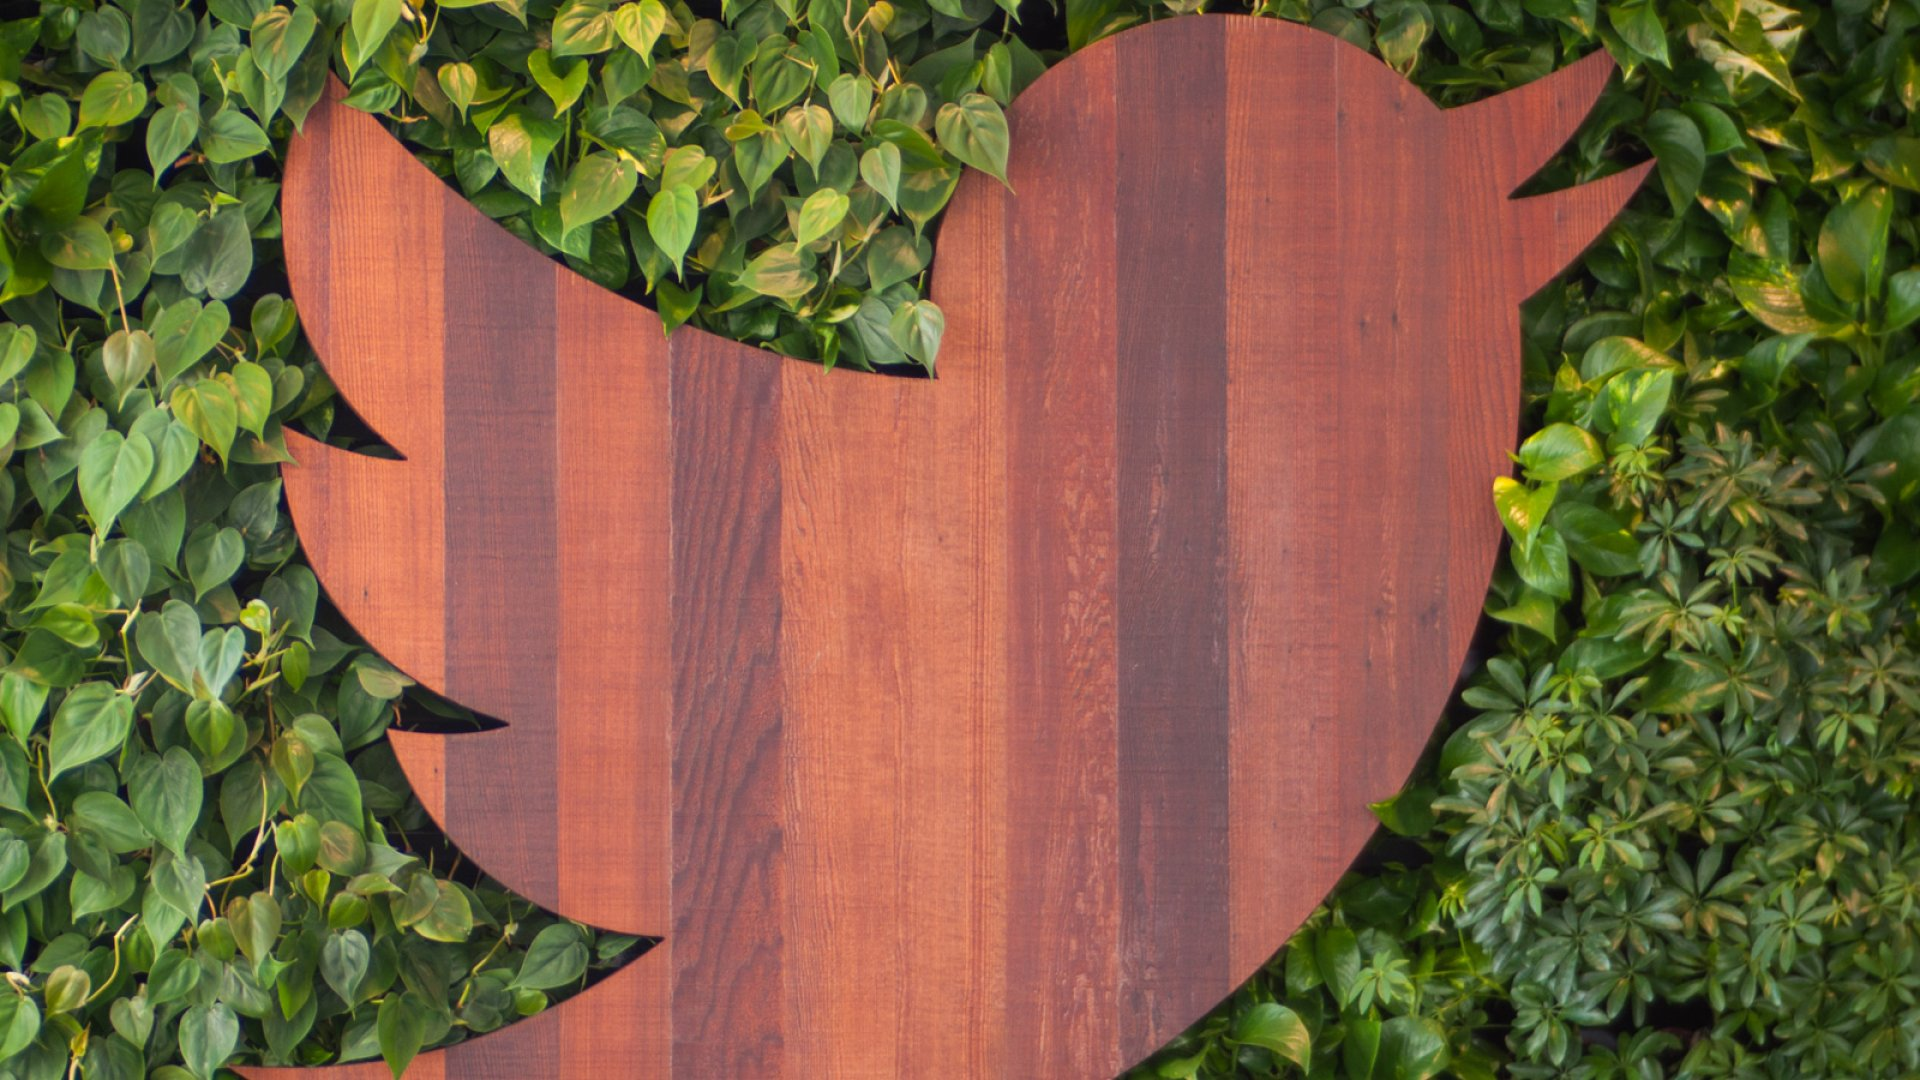 A Former Twitter Employee Is Suing the Company for Gender Discrimination